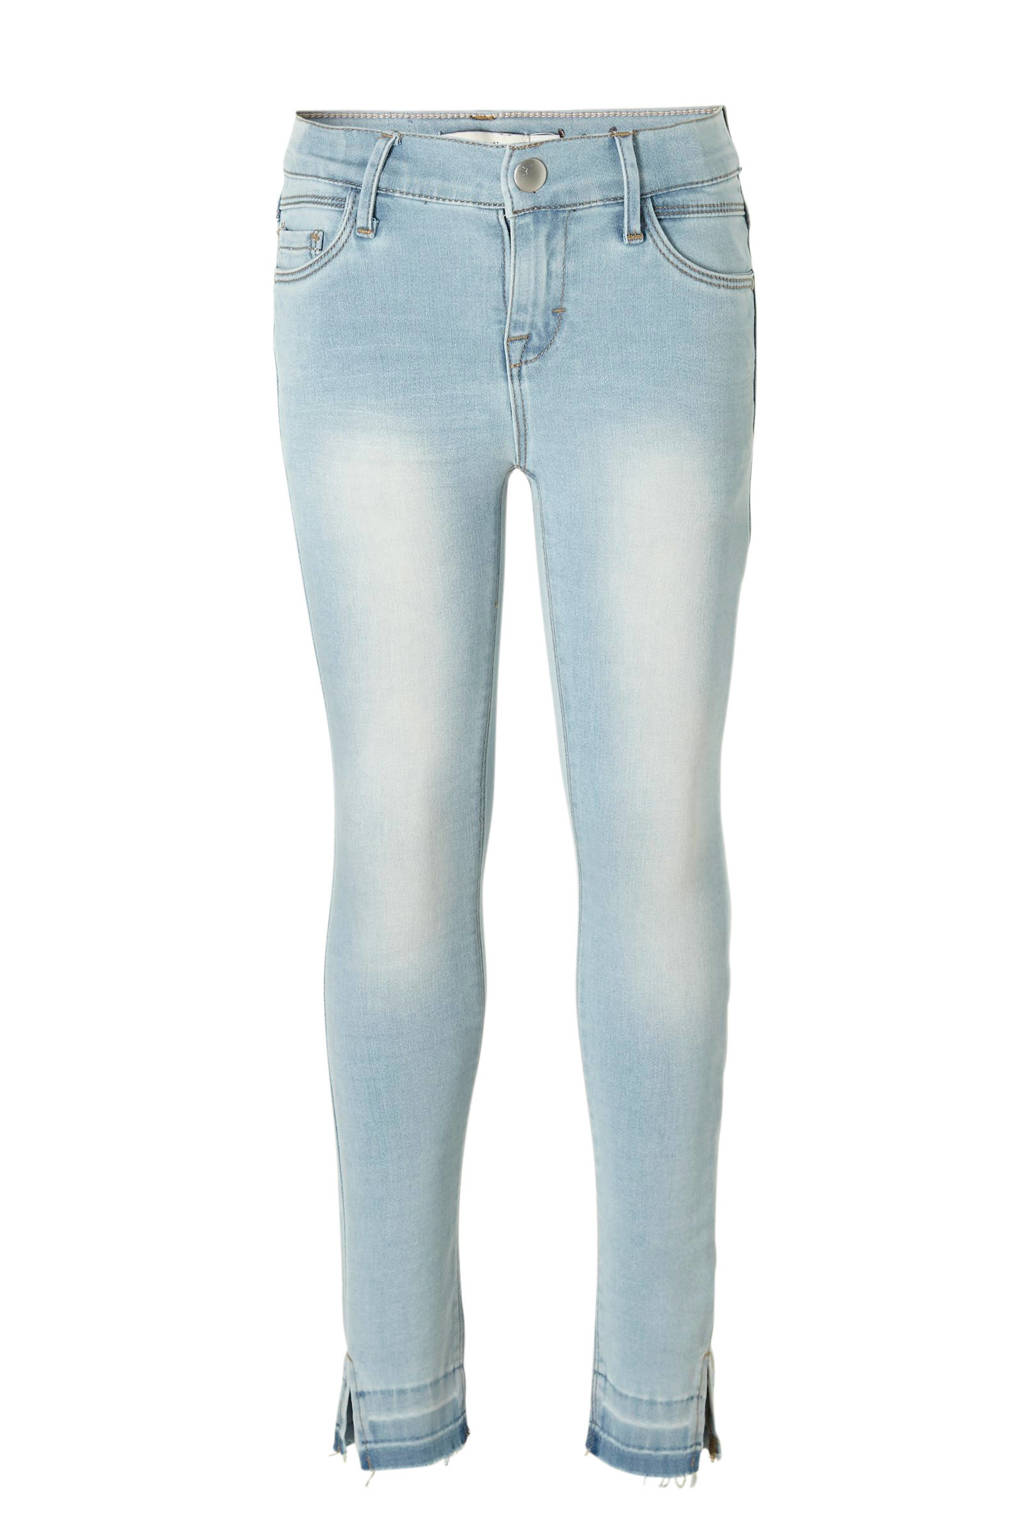 name it skinny fit 7/8 jeans Polly, Lichtblauw